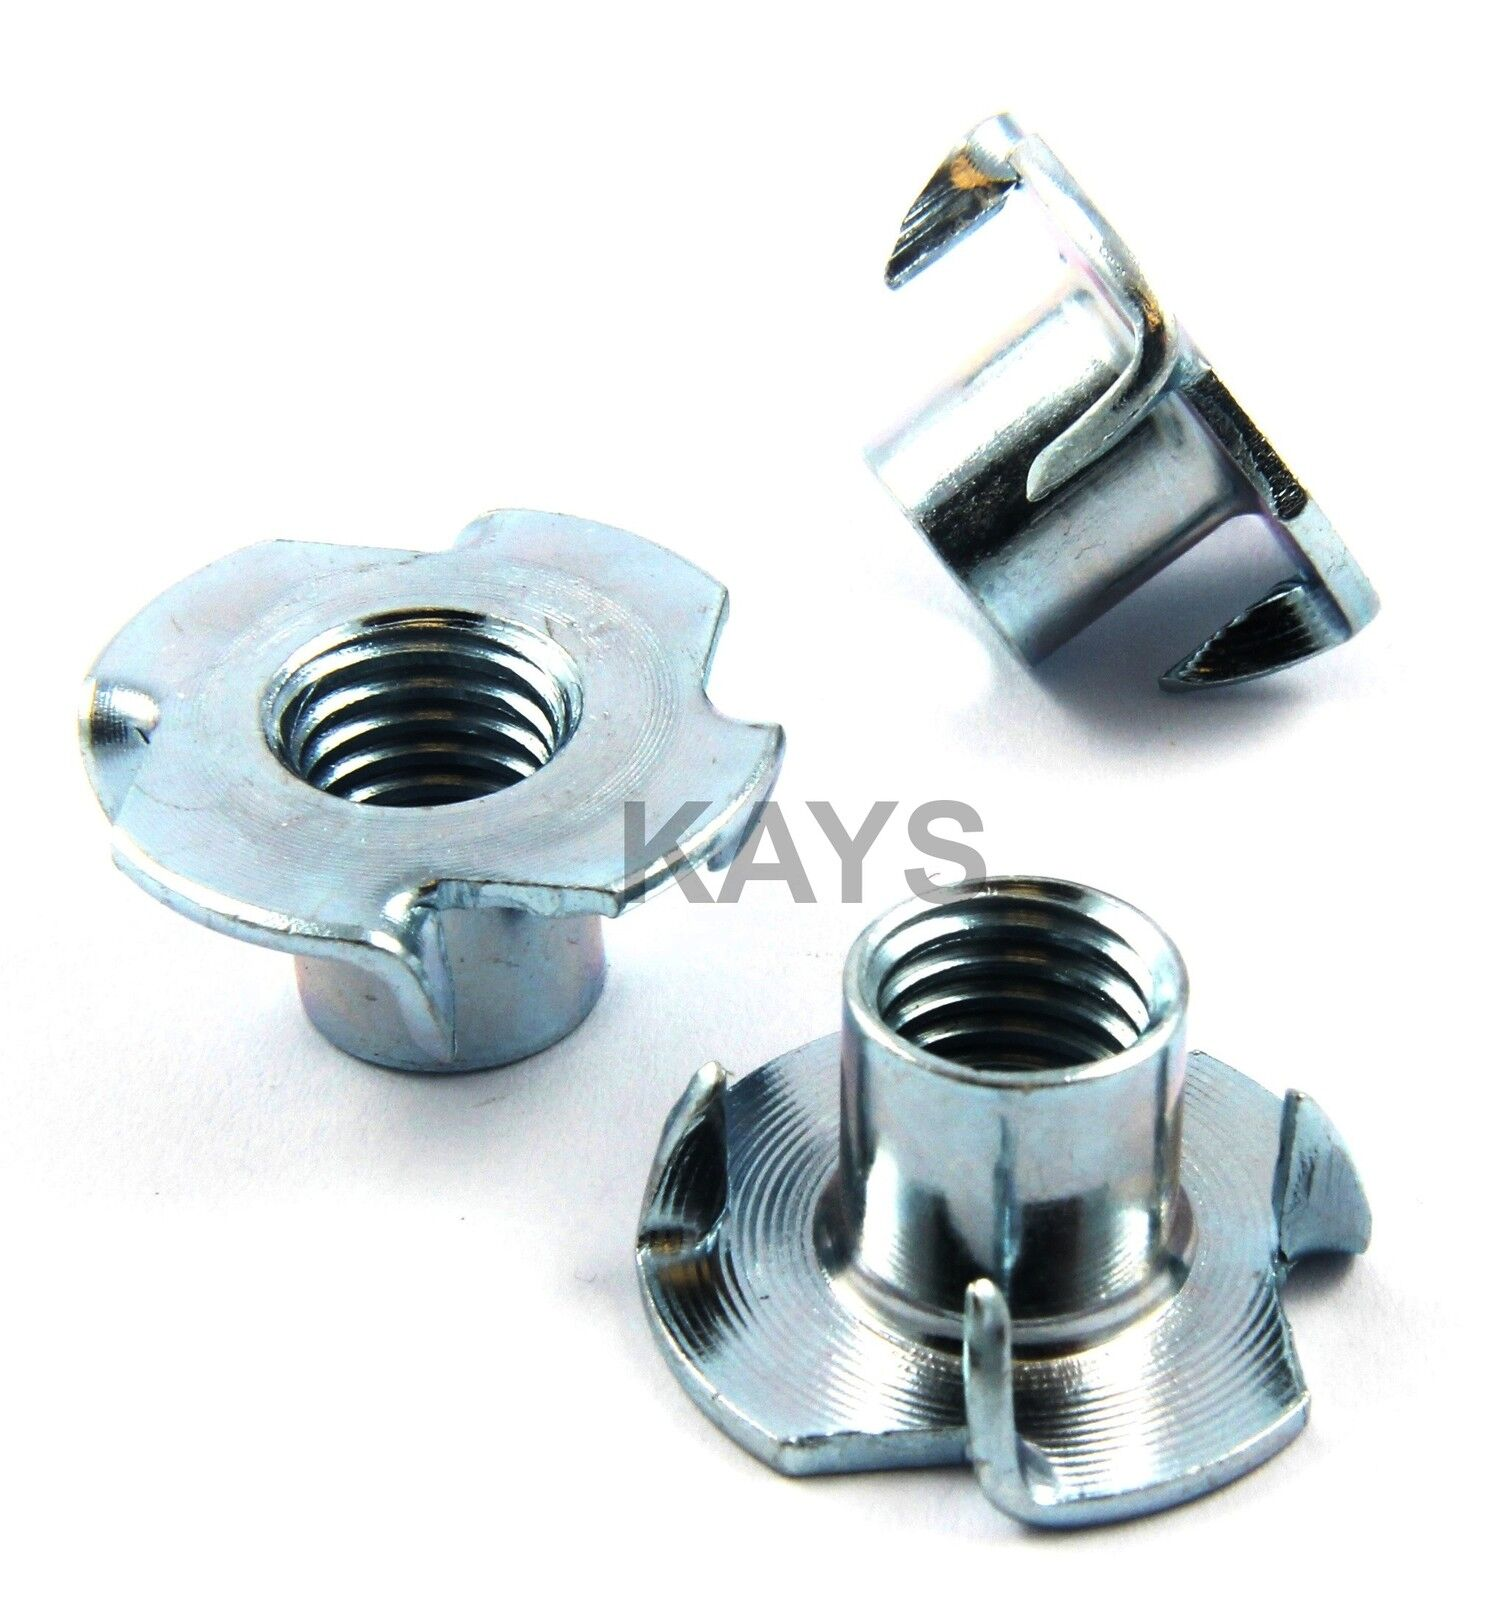 FOUR PRONGED T NUTS CAPTIVE THREADED INSERTS FOR WOOD FURNITURE M4,M5,M6,M8,M10